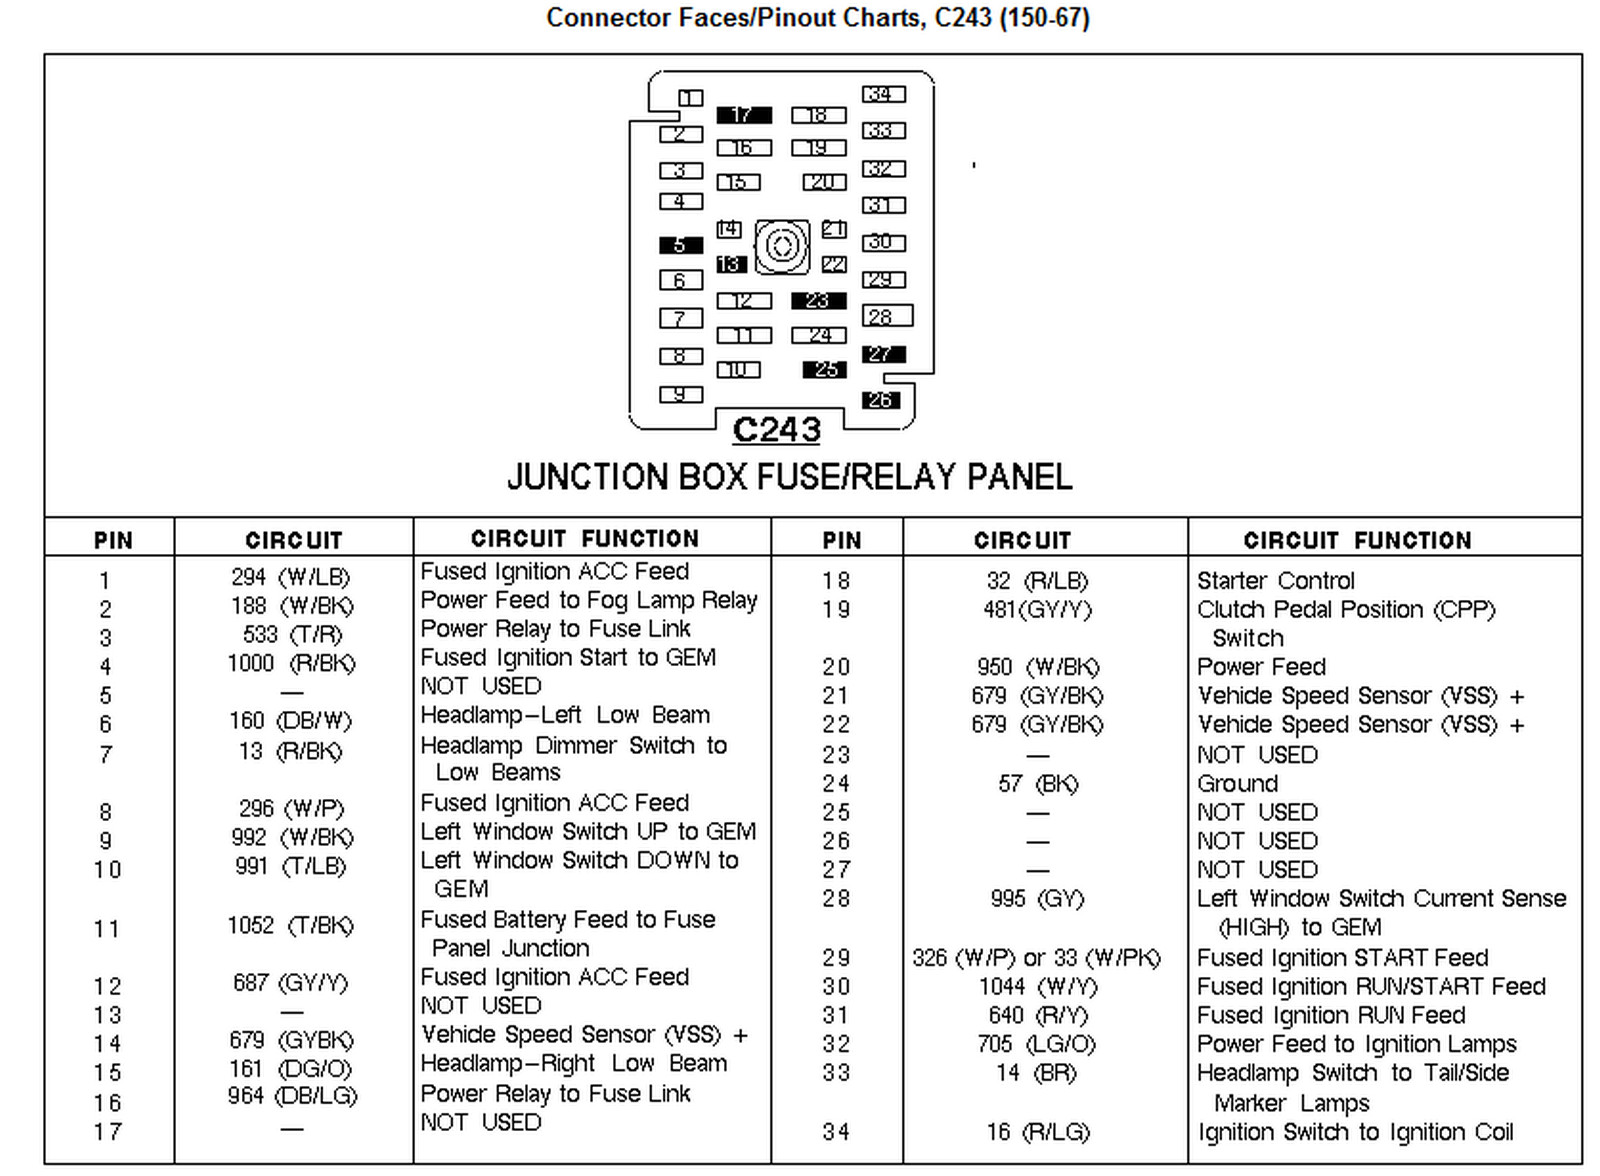 ford fuse panel layout most uptodate wiring diagram info • 1997 ford truck fuse box diagram wiring diagram data rh 8 5 reisen fuer meister de ford ranger fuse panel diagram 2000 ford f350 fuse panel diagram 2004